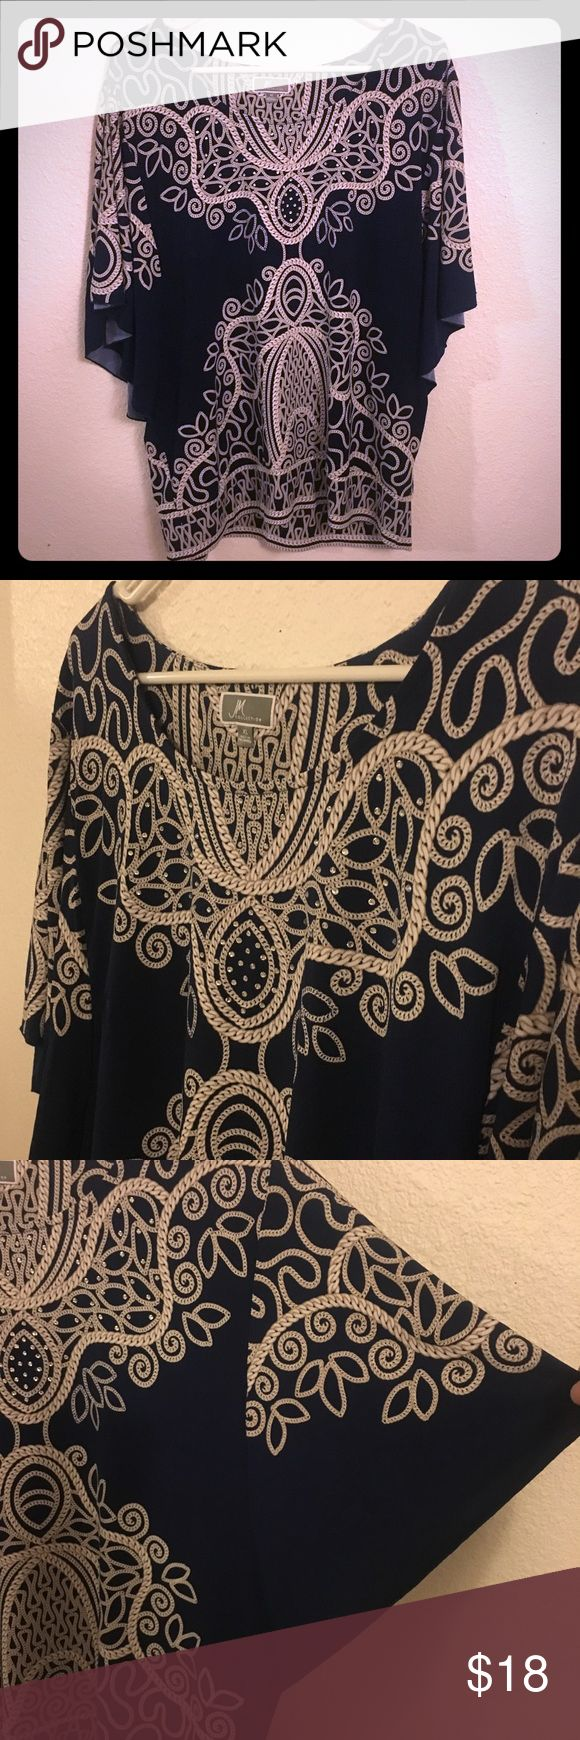 Embellished Batwing Top Navy blue and tan / buff / nude with Crystal like embellishments around neck line. Size XL by JM Collection JM Collection Tops